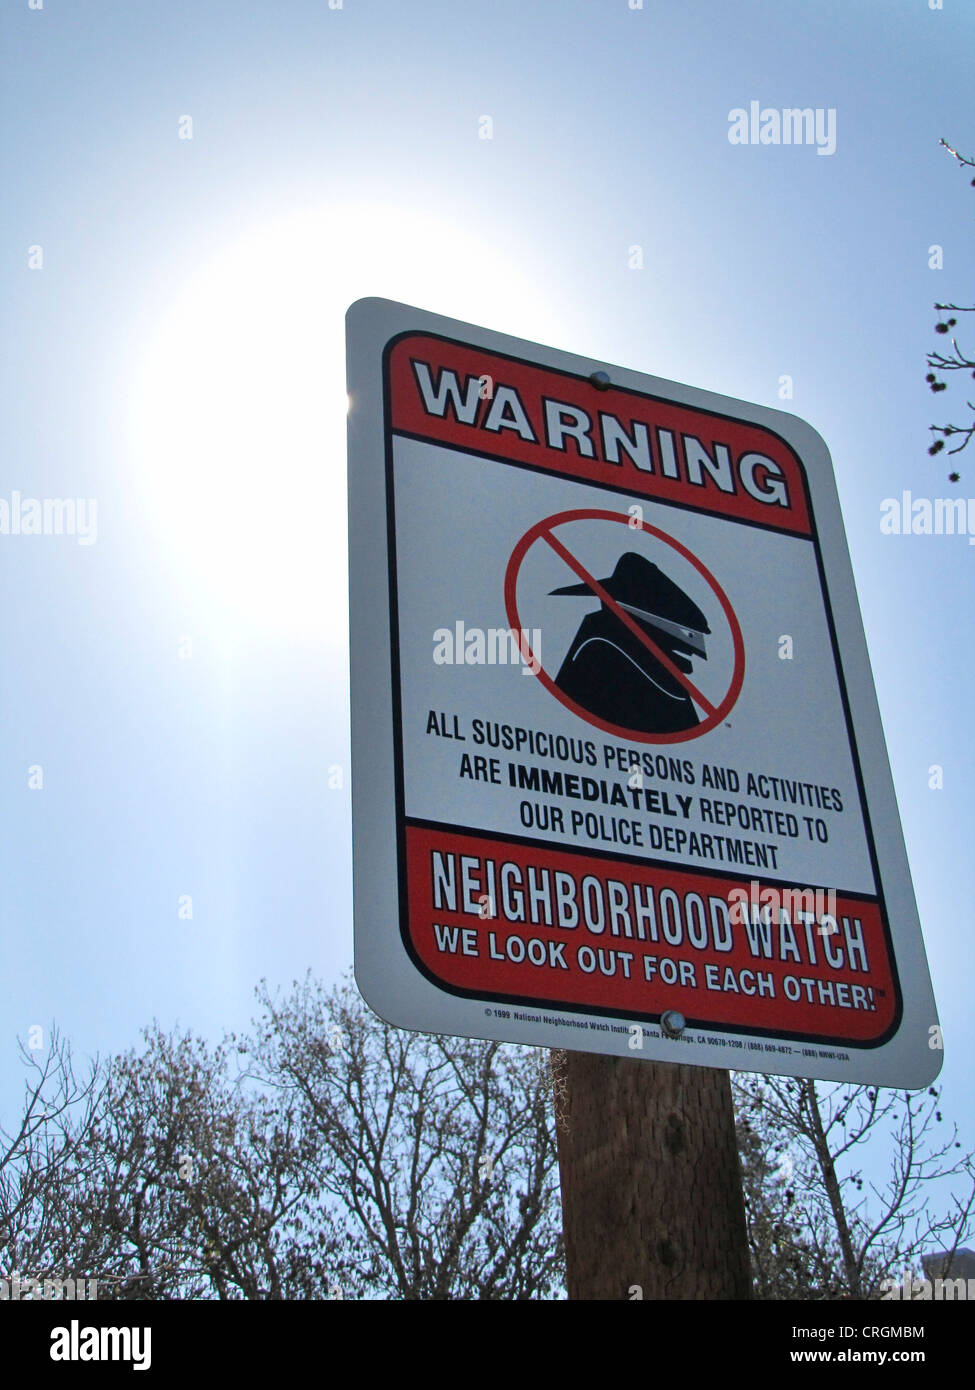 Plate warning criminals, neighbourhood watch - 'We look out for each other', USA, California, Santa Cruz - Stock Image